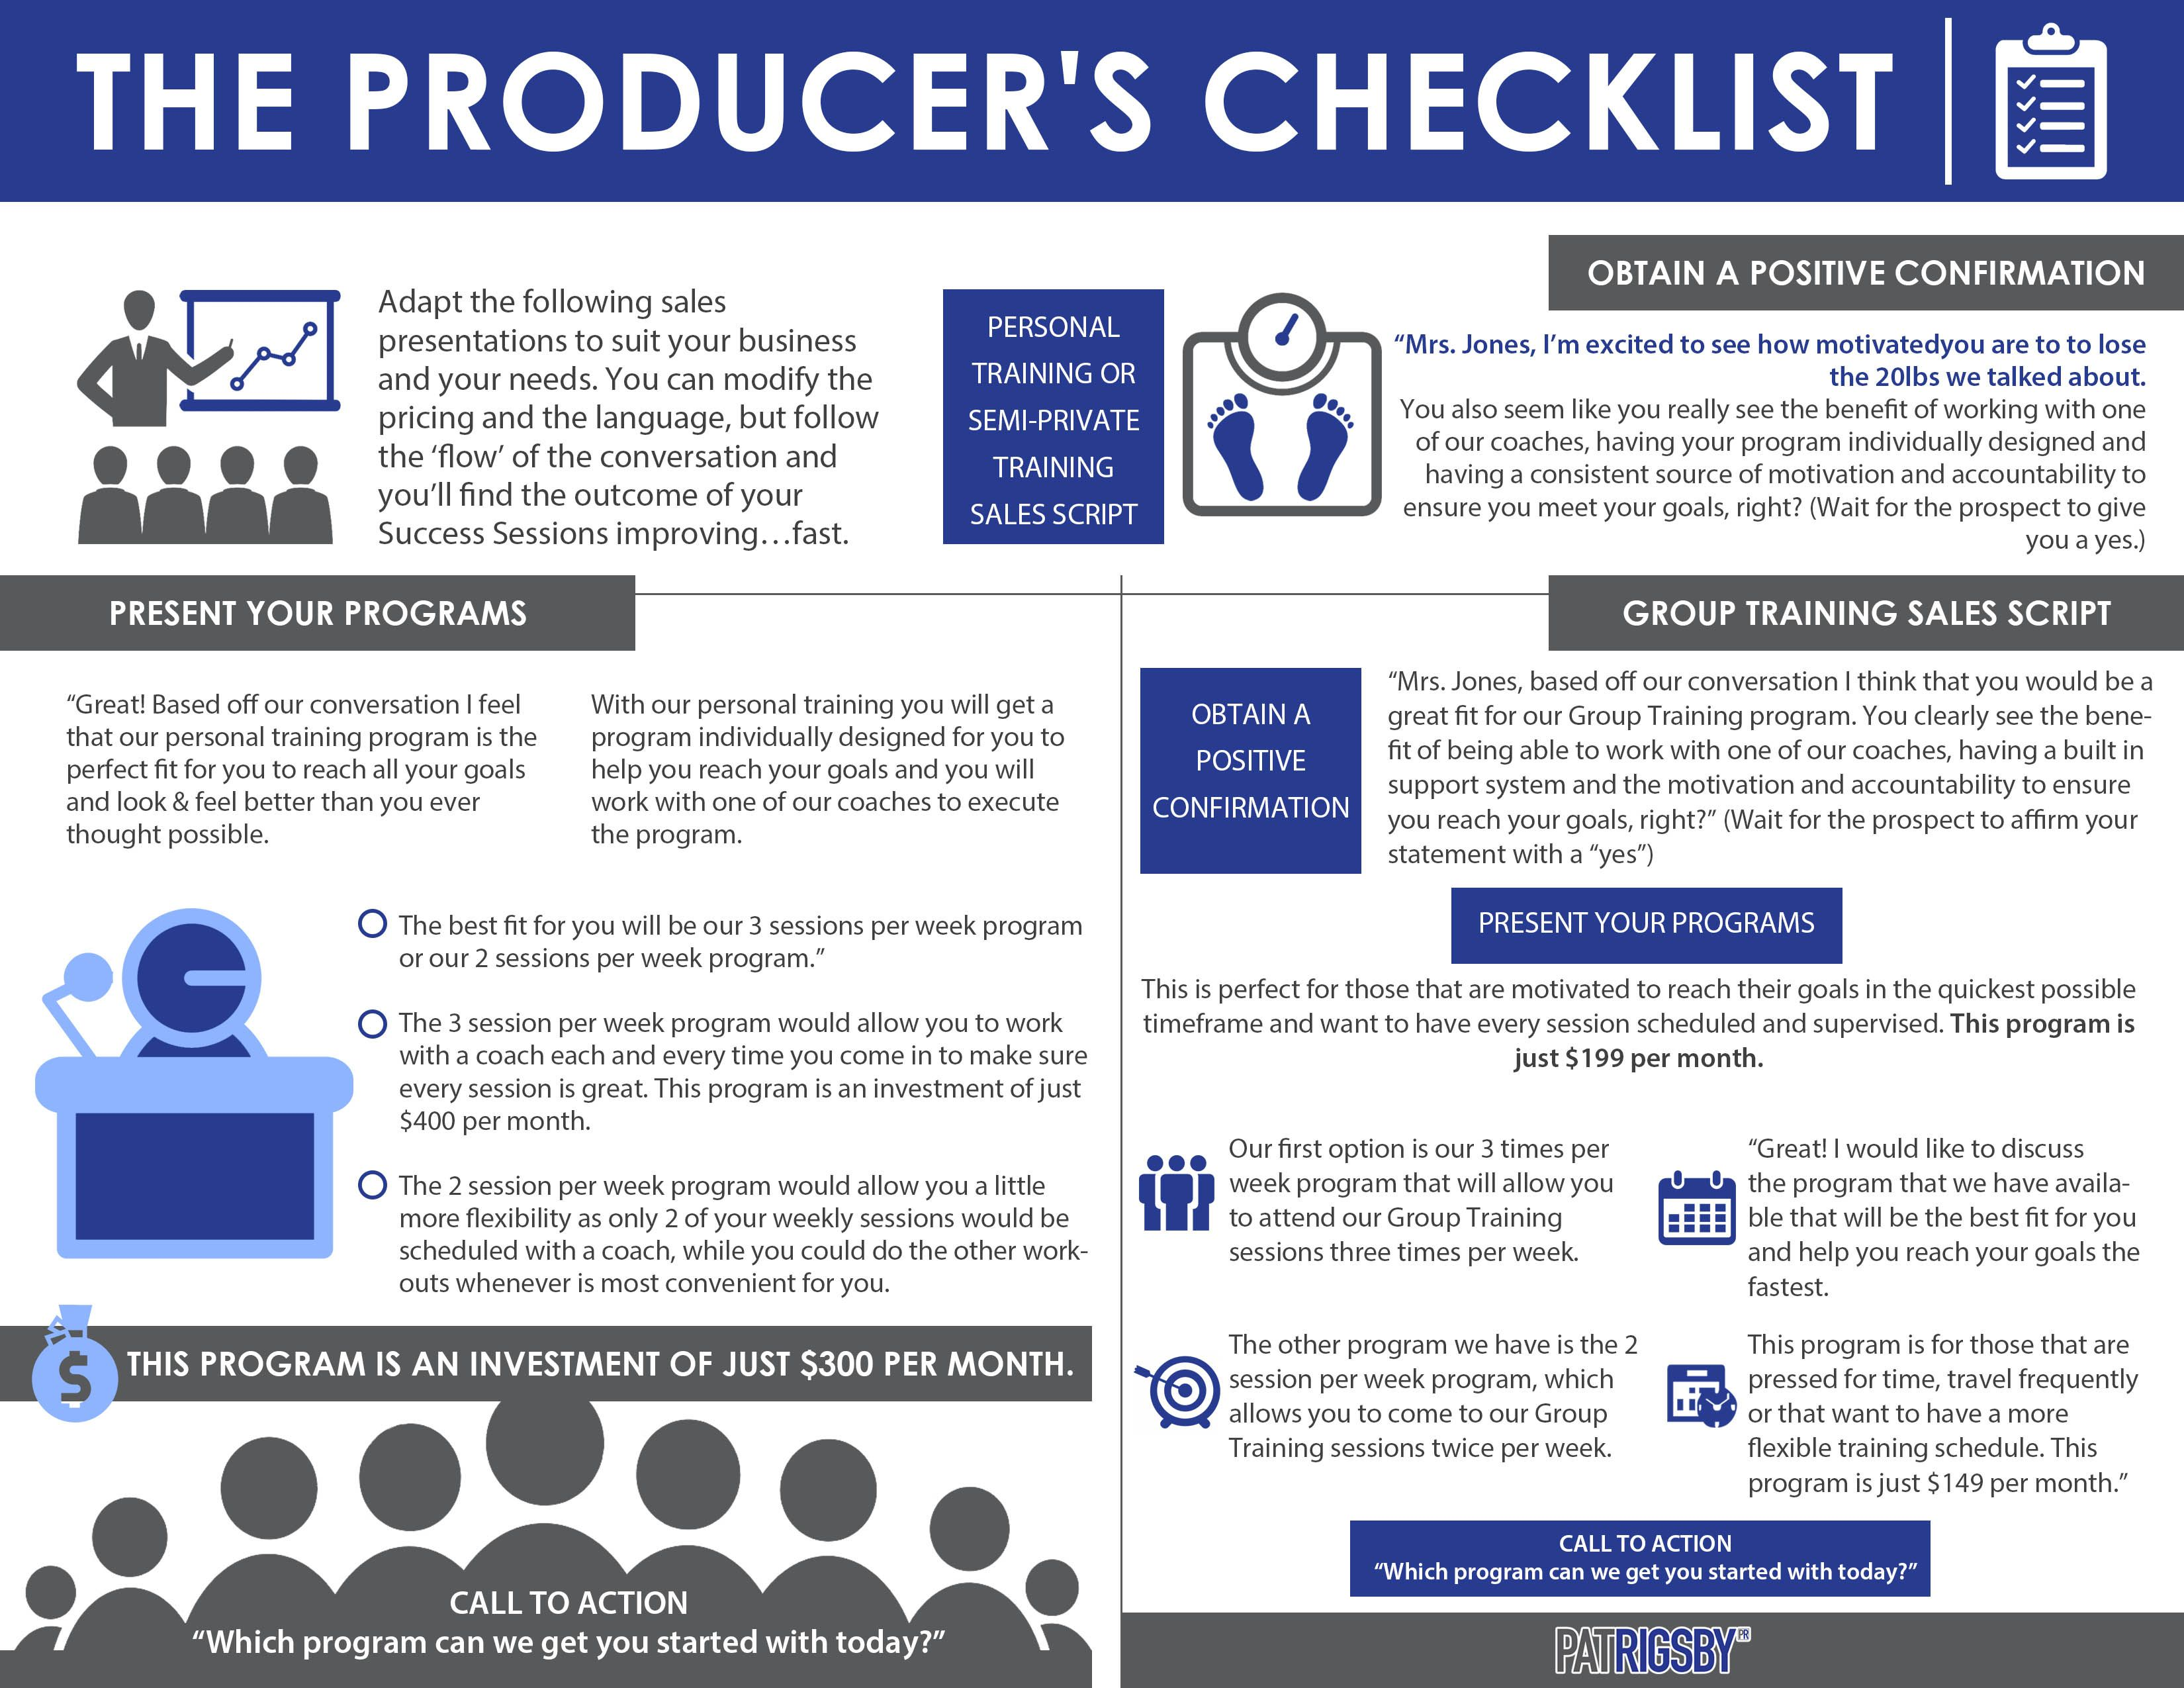 Top Producer S Checklist To Improve And Expand Sales How Has Your